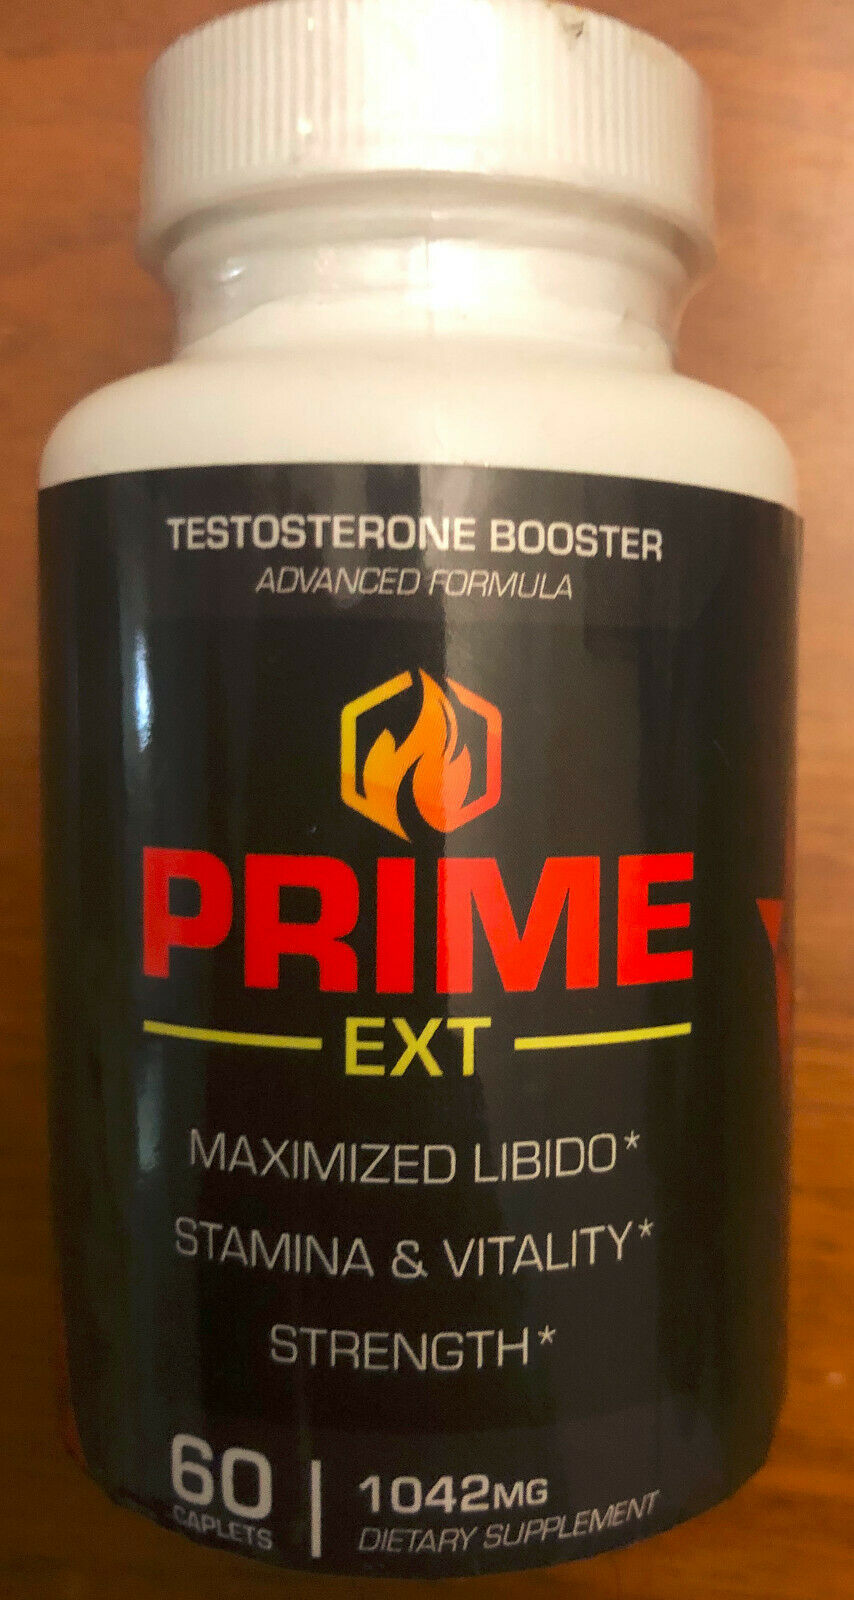 PRIME EXT (PRIMEEXT) - MALE ENHANCEMENT - 30 DAY MONEY BACK GUARANTEE